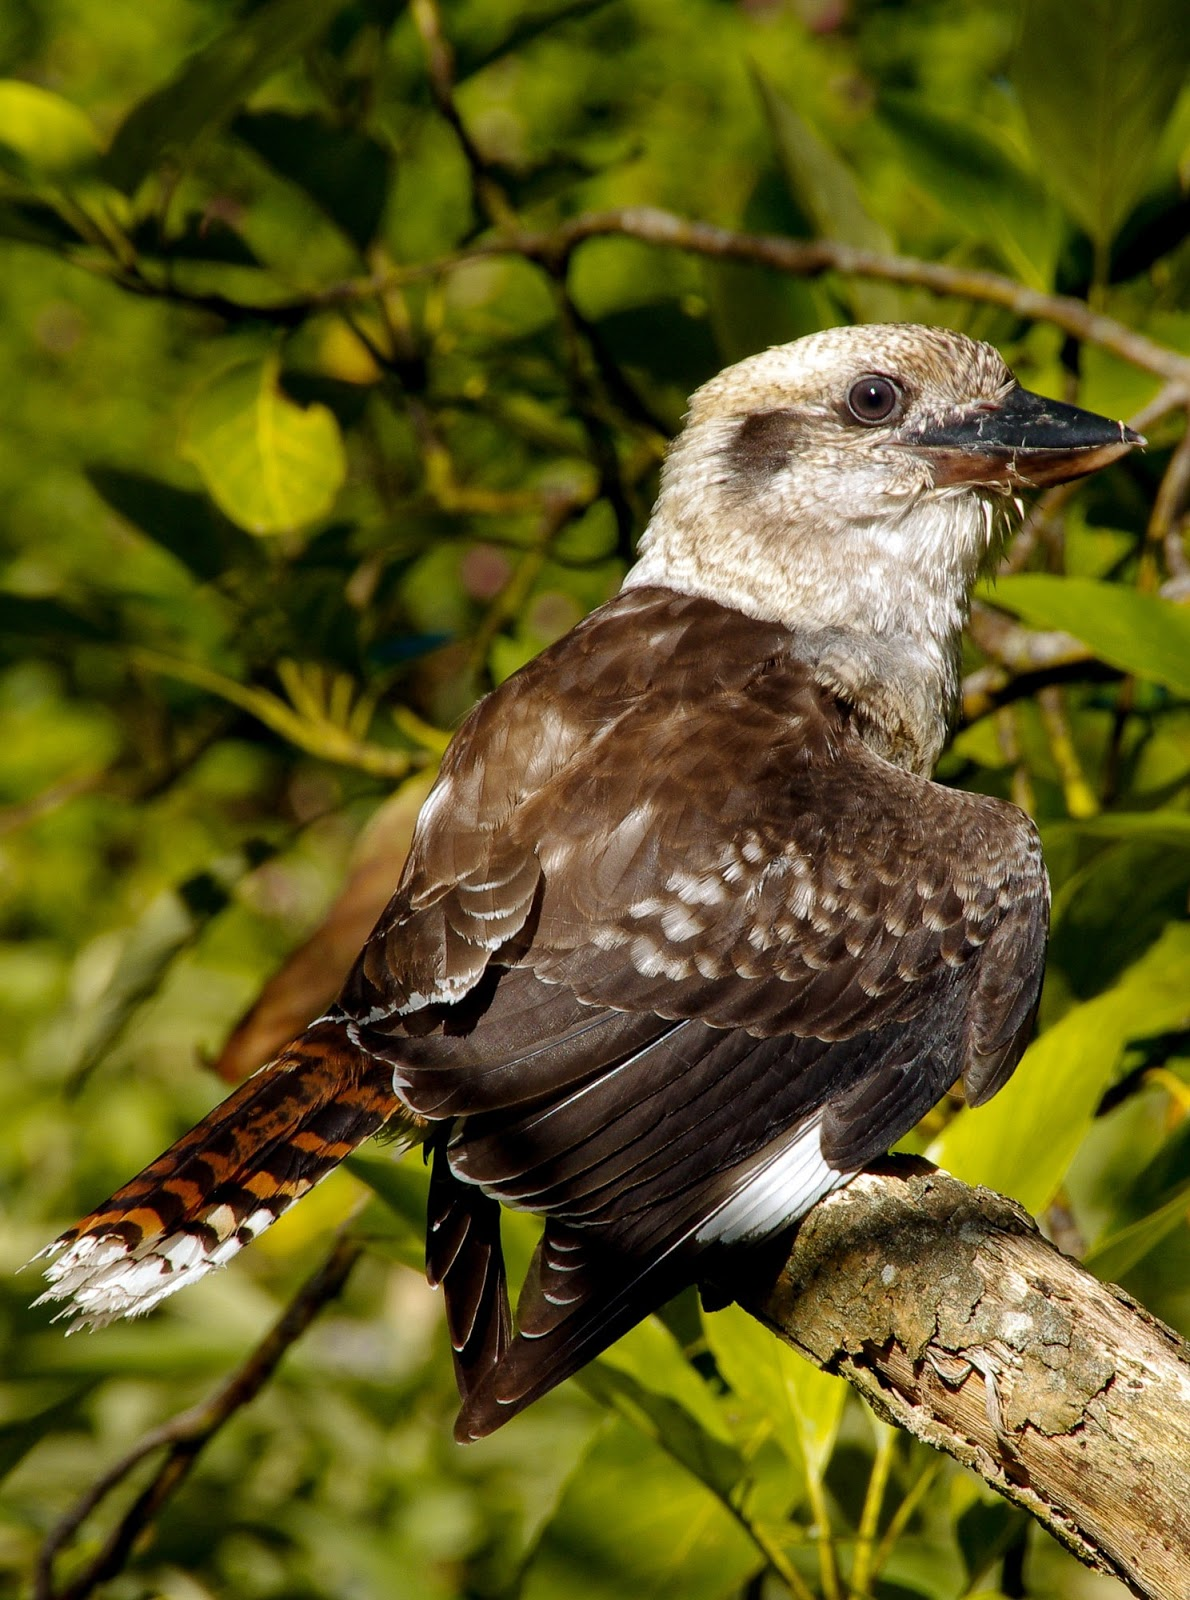 Picture of kookaburra bird in the wild.